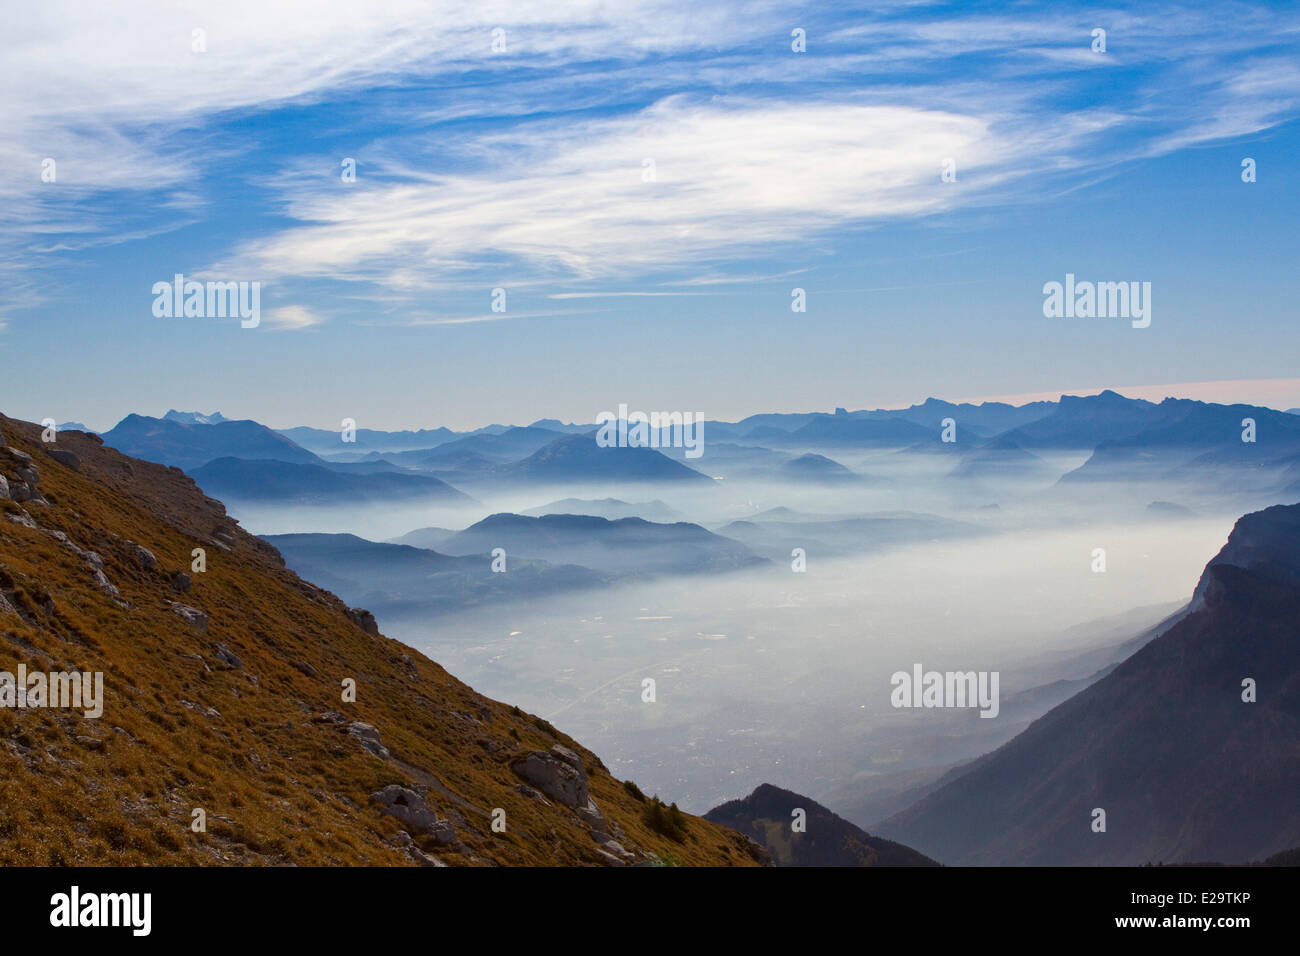 France, Isere, the Gresivaudan valley seen in the mists of the Parc Naturel Regional de Chartreuse (Natural Regional - Stock Image